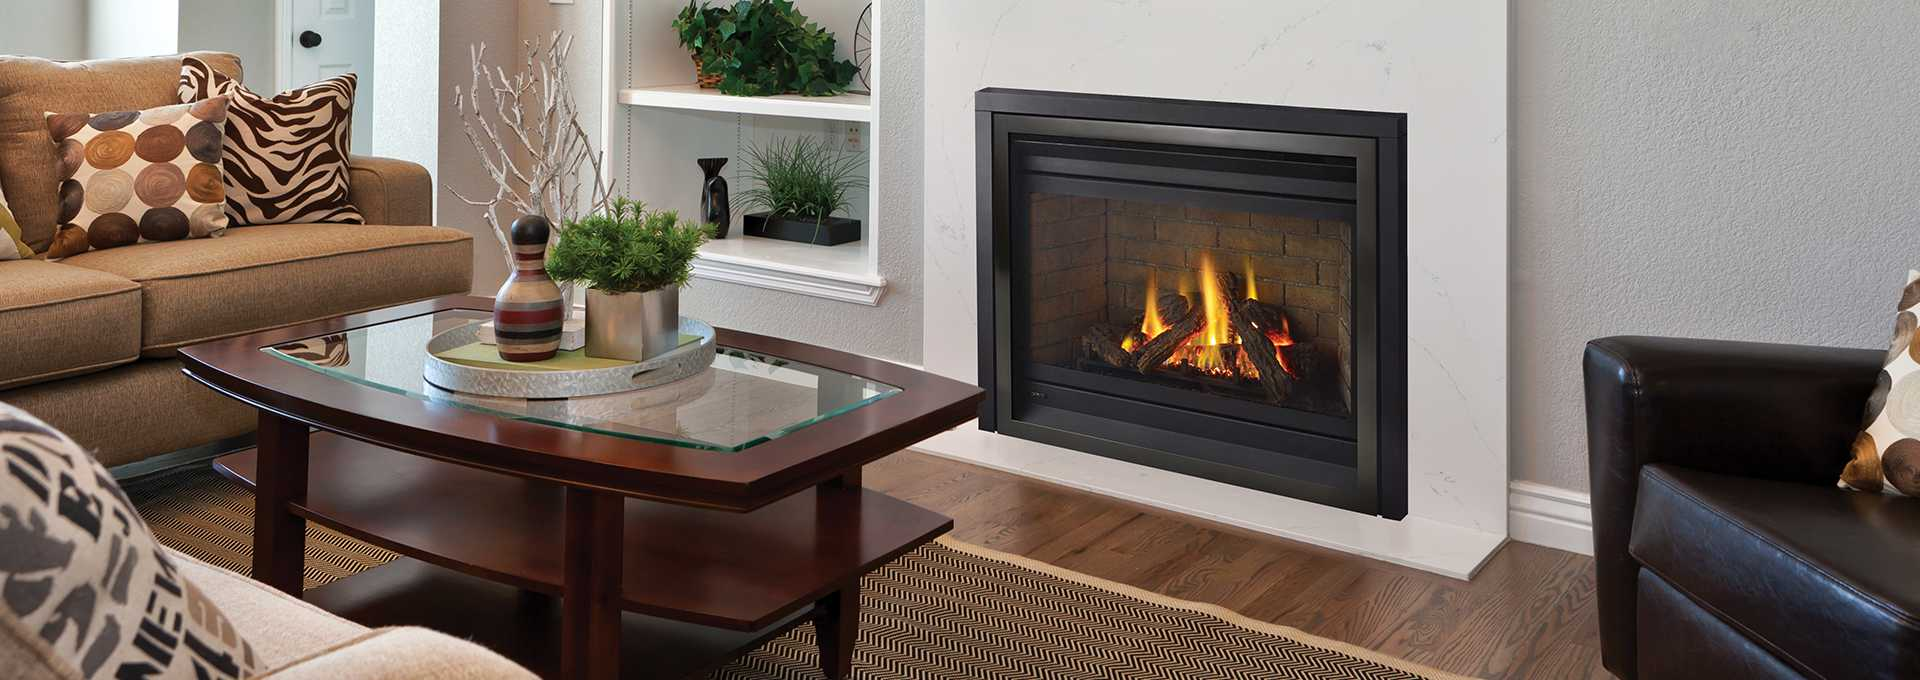 panorama p36 gas fireplace gas fireplaces regency fireplace